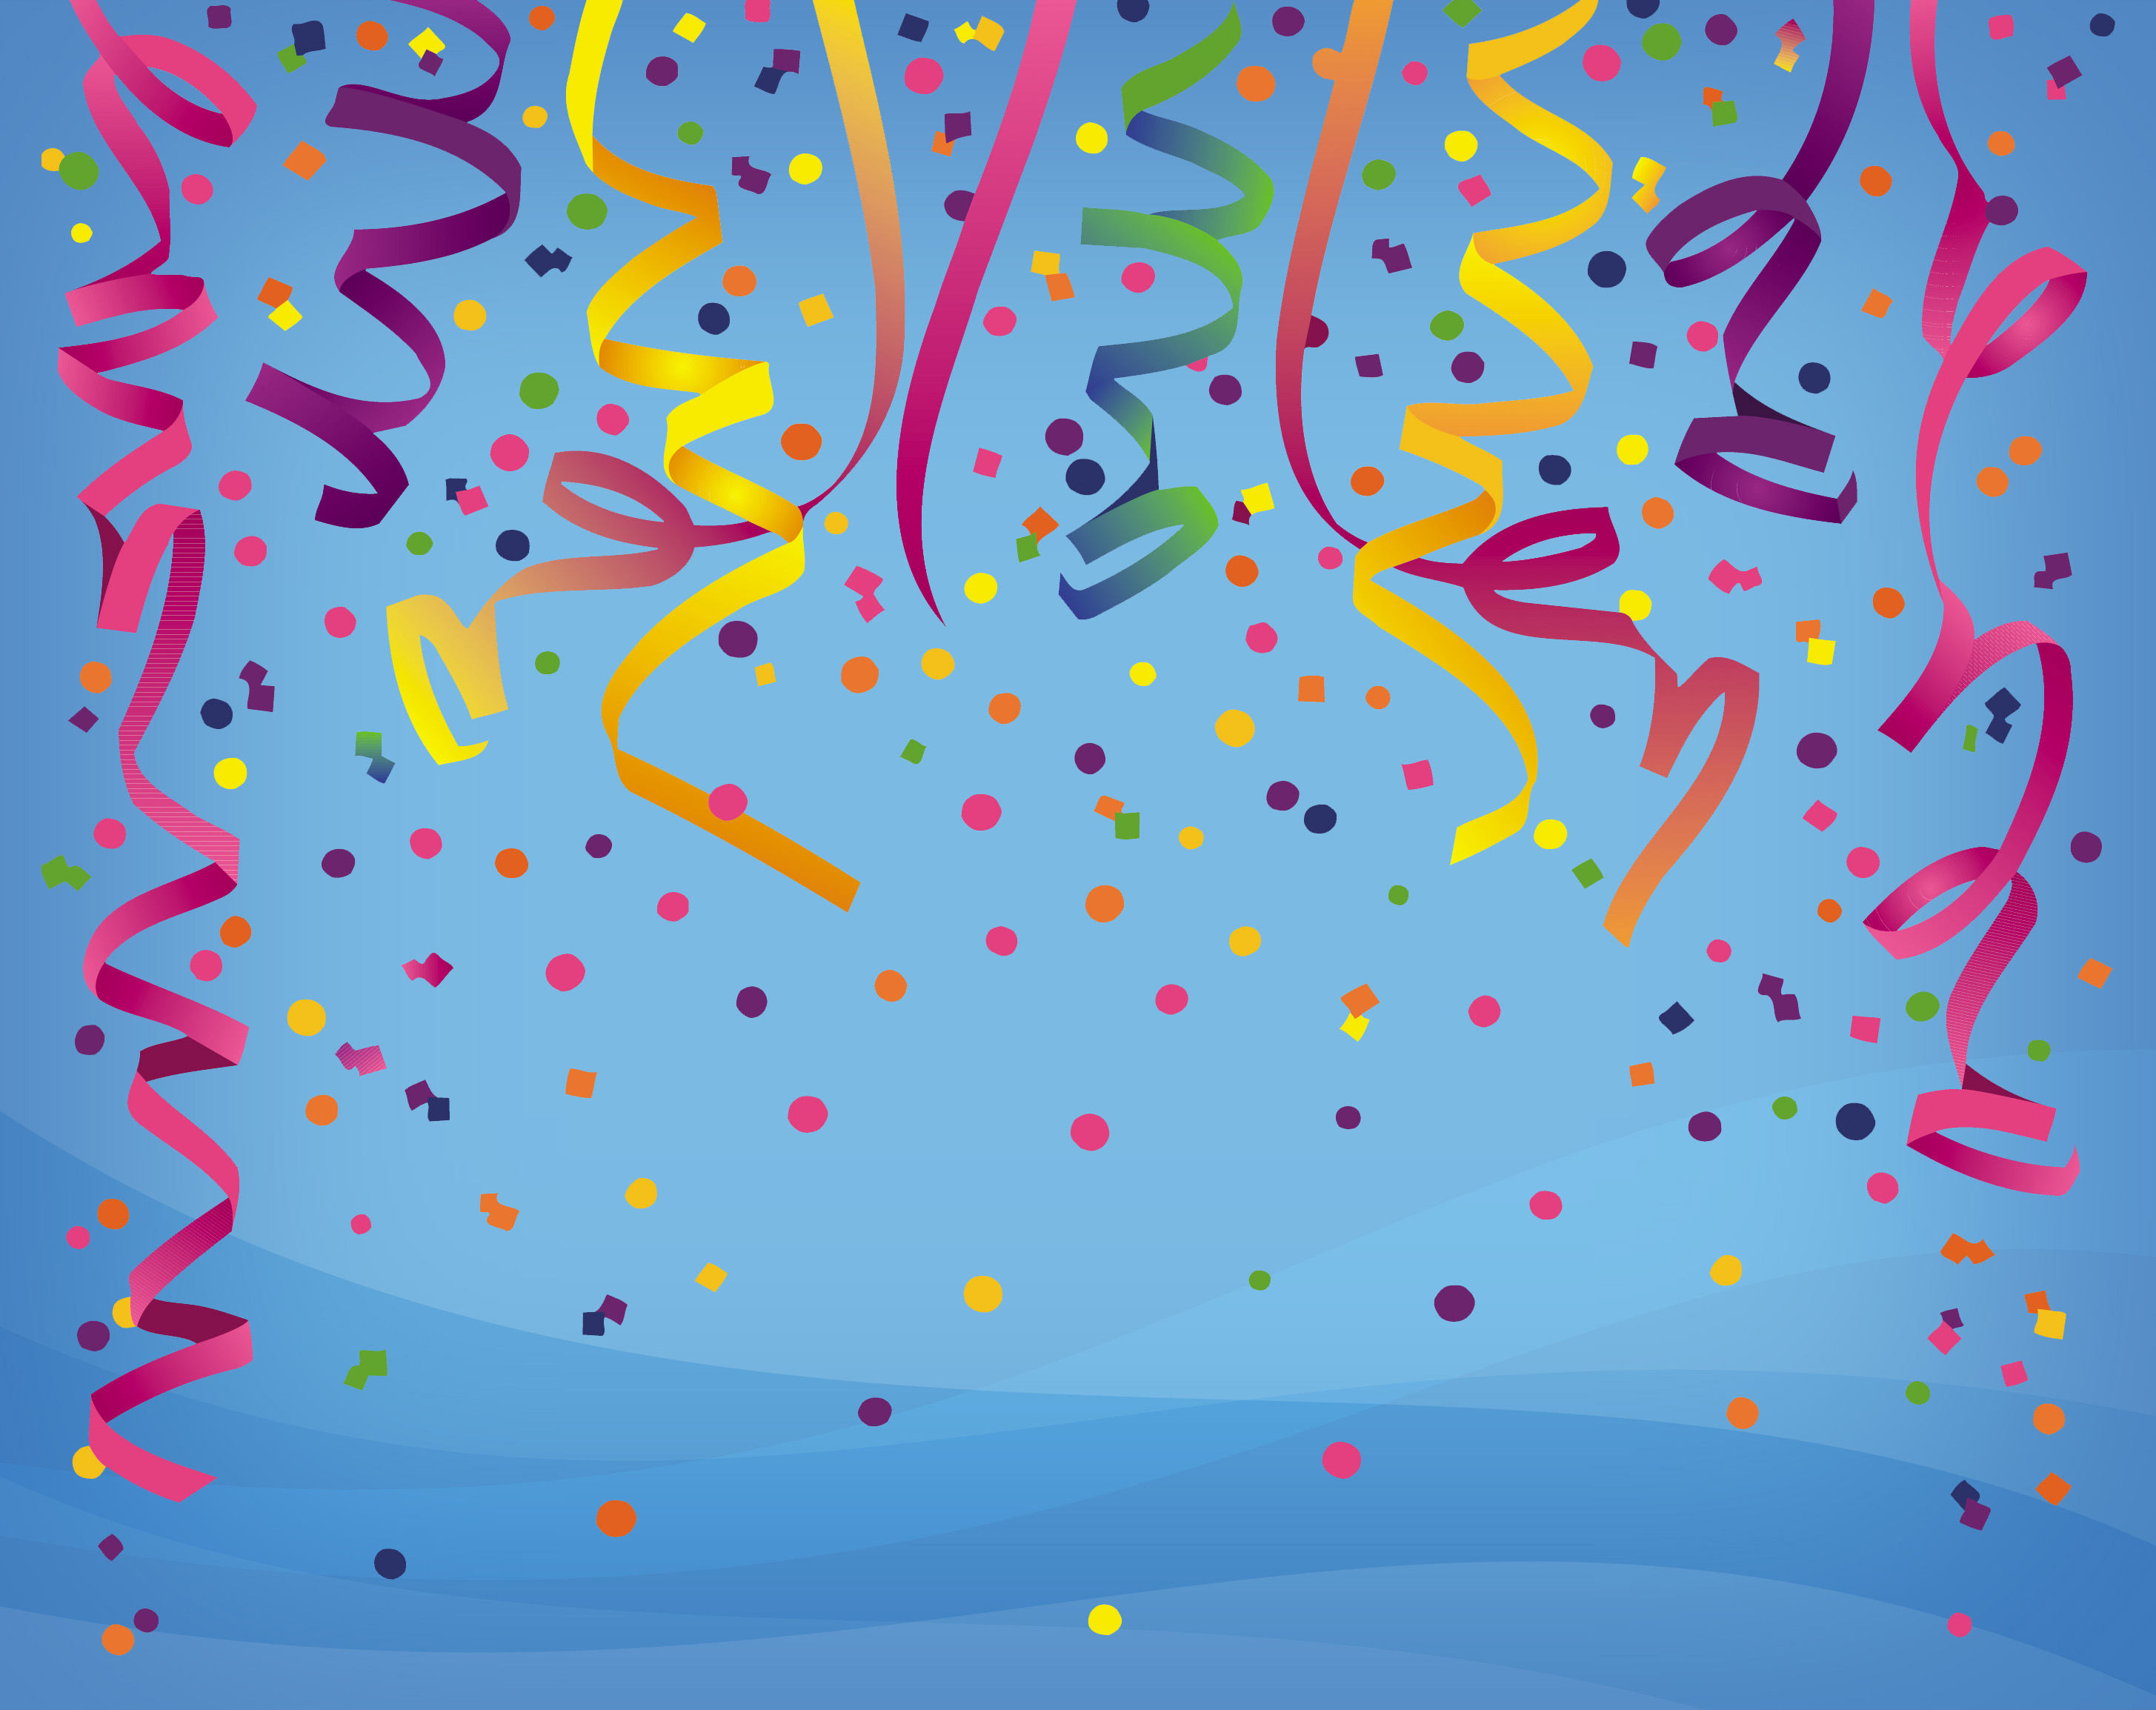 46 Confetti Images for Free (2MTX Confetti Wallpapers)